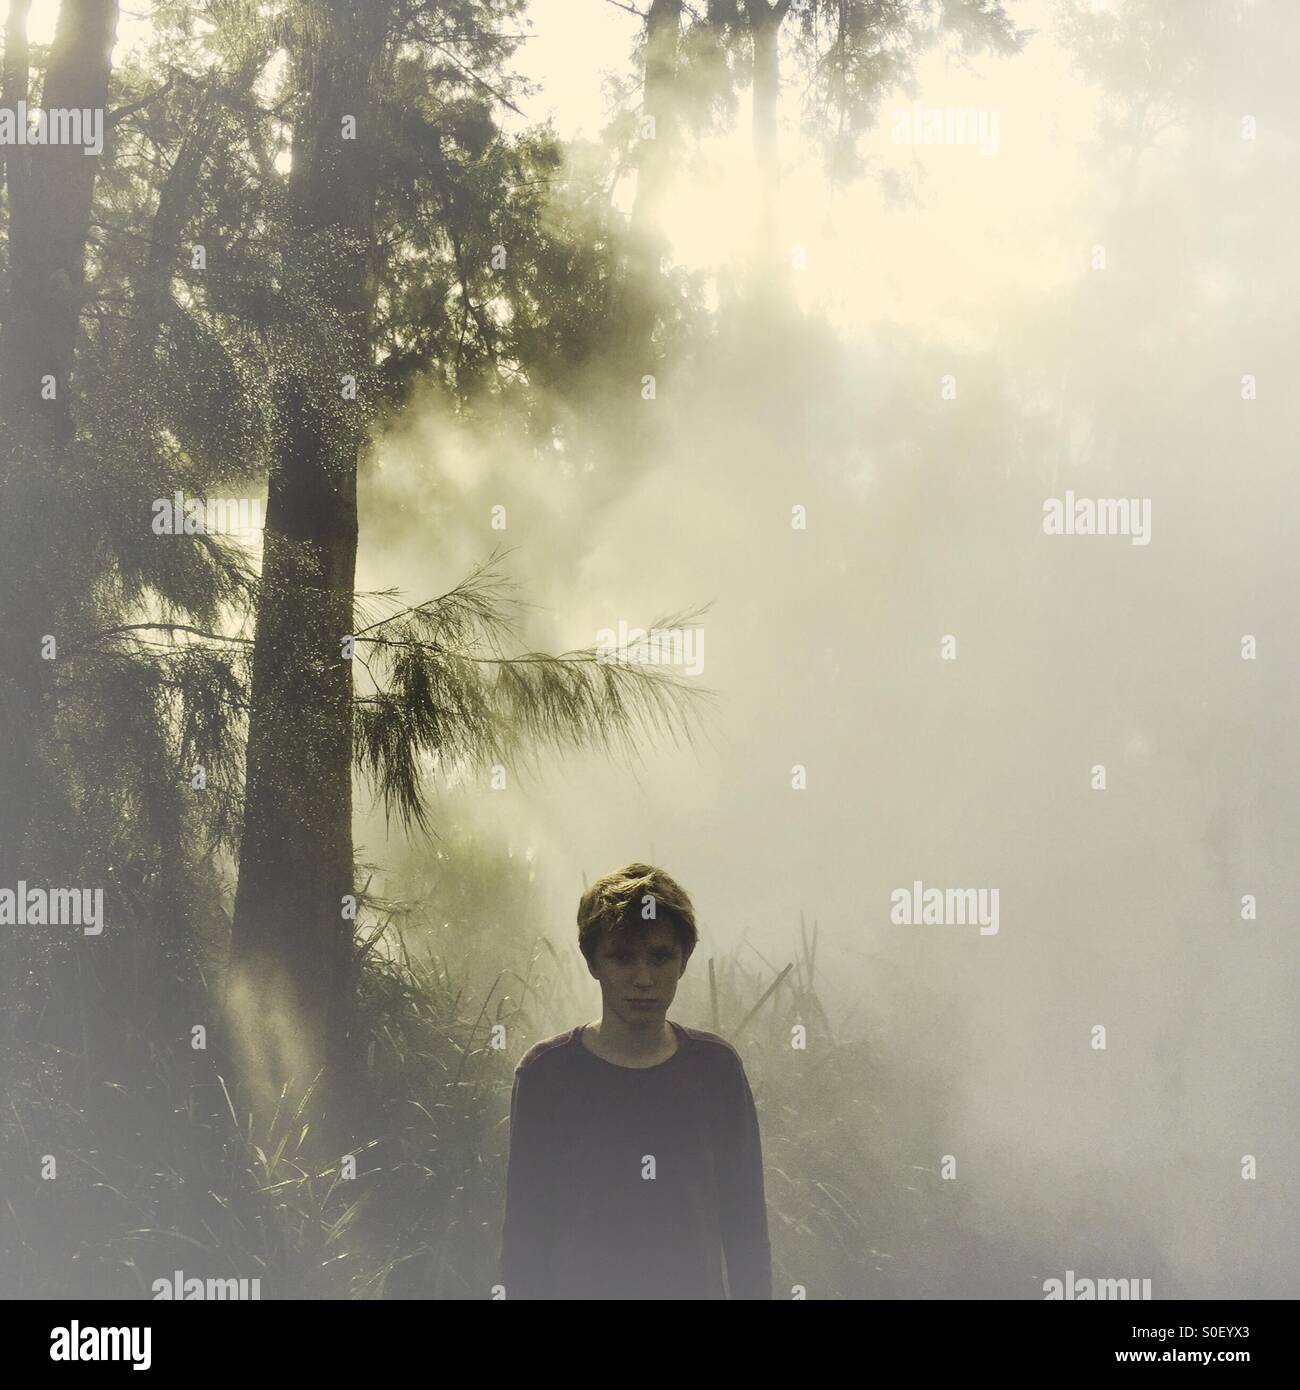 A mysterious boy in the fog - Stock Image